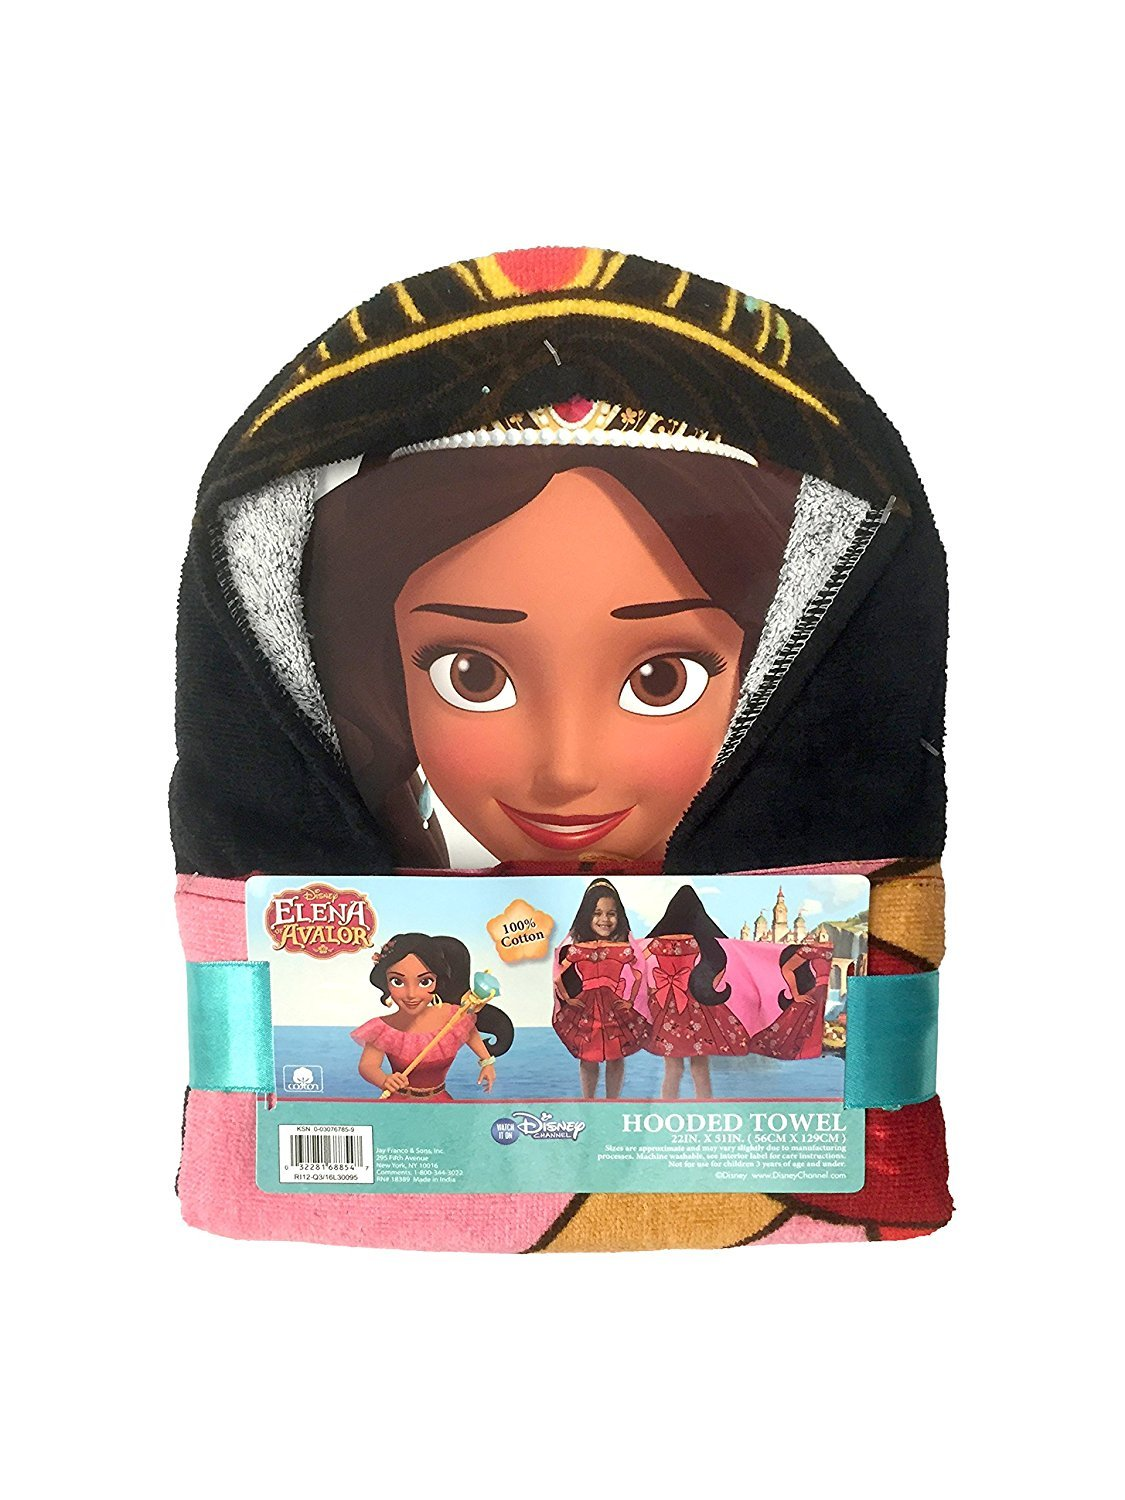 Disney Elena of Avalor - Hooded Bath Towel 100% Cotton, 22 in x 51 in (56 cm x 130 cm) by Jay Franco and Sons, Inc. (Image #4)